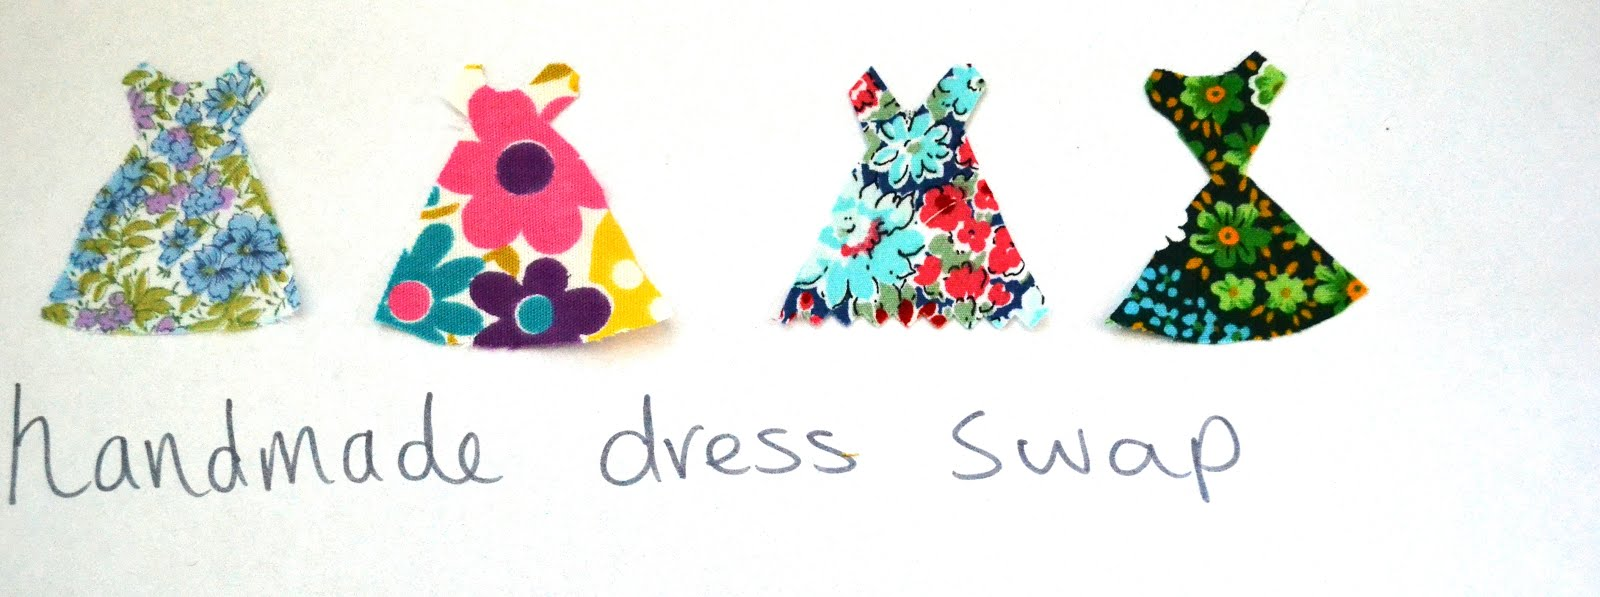 Handmade Dress Swap